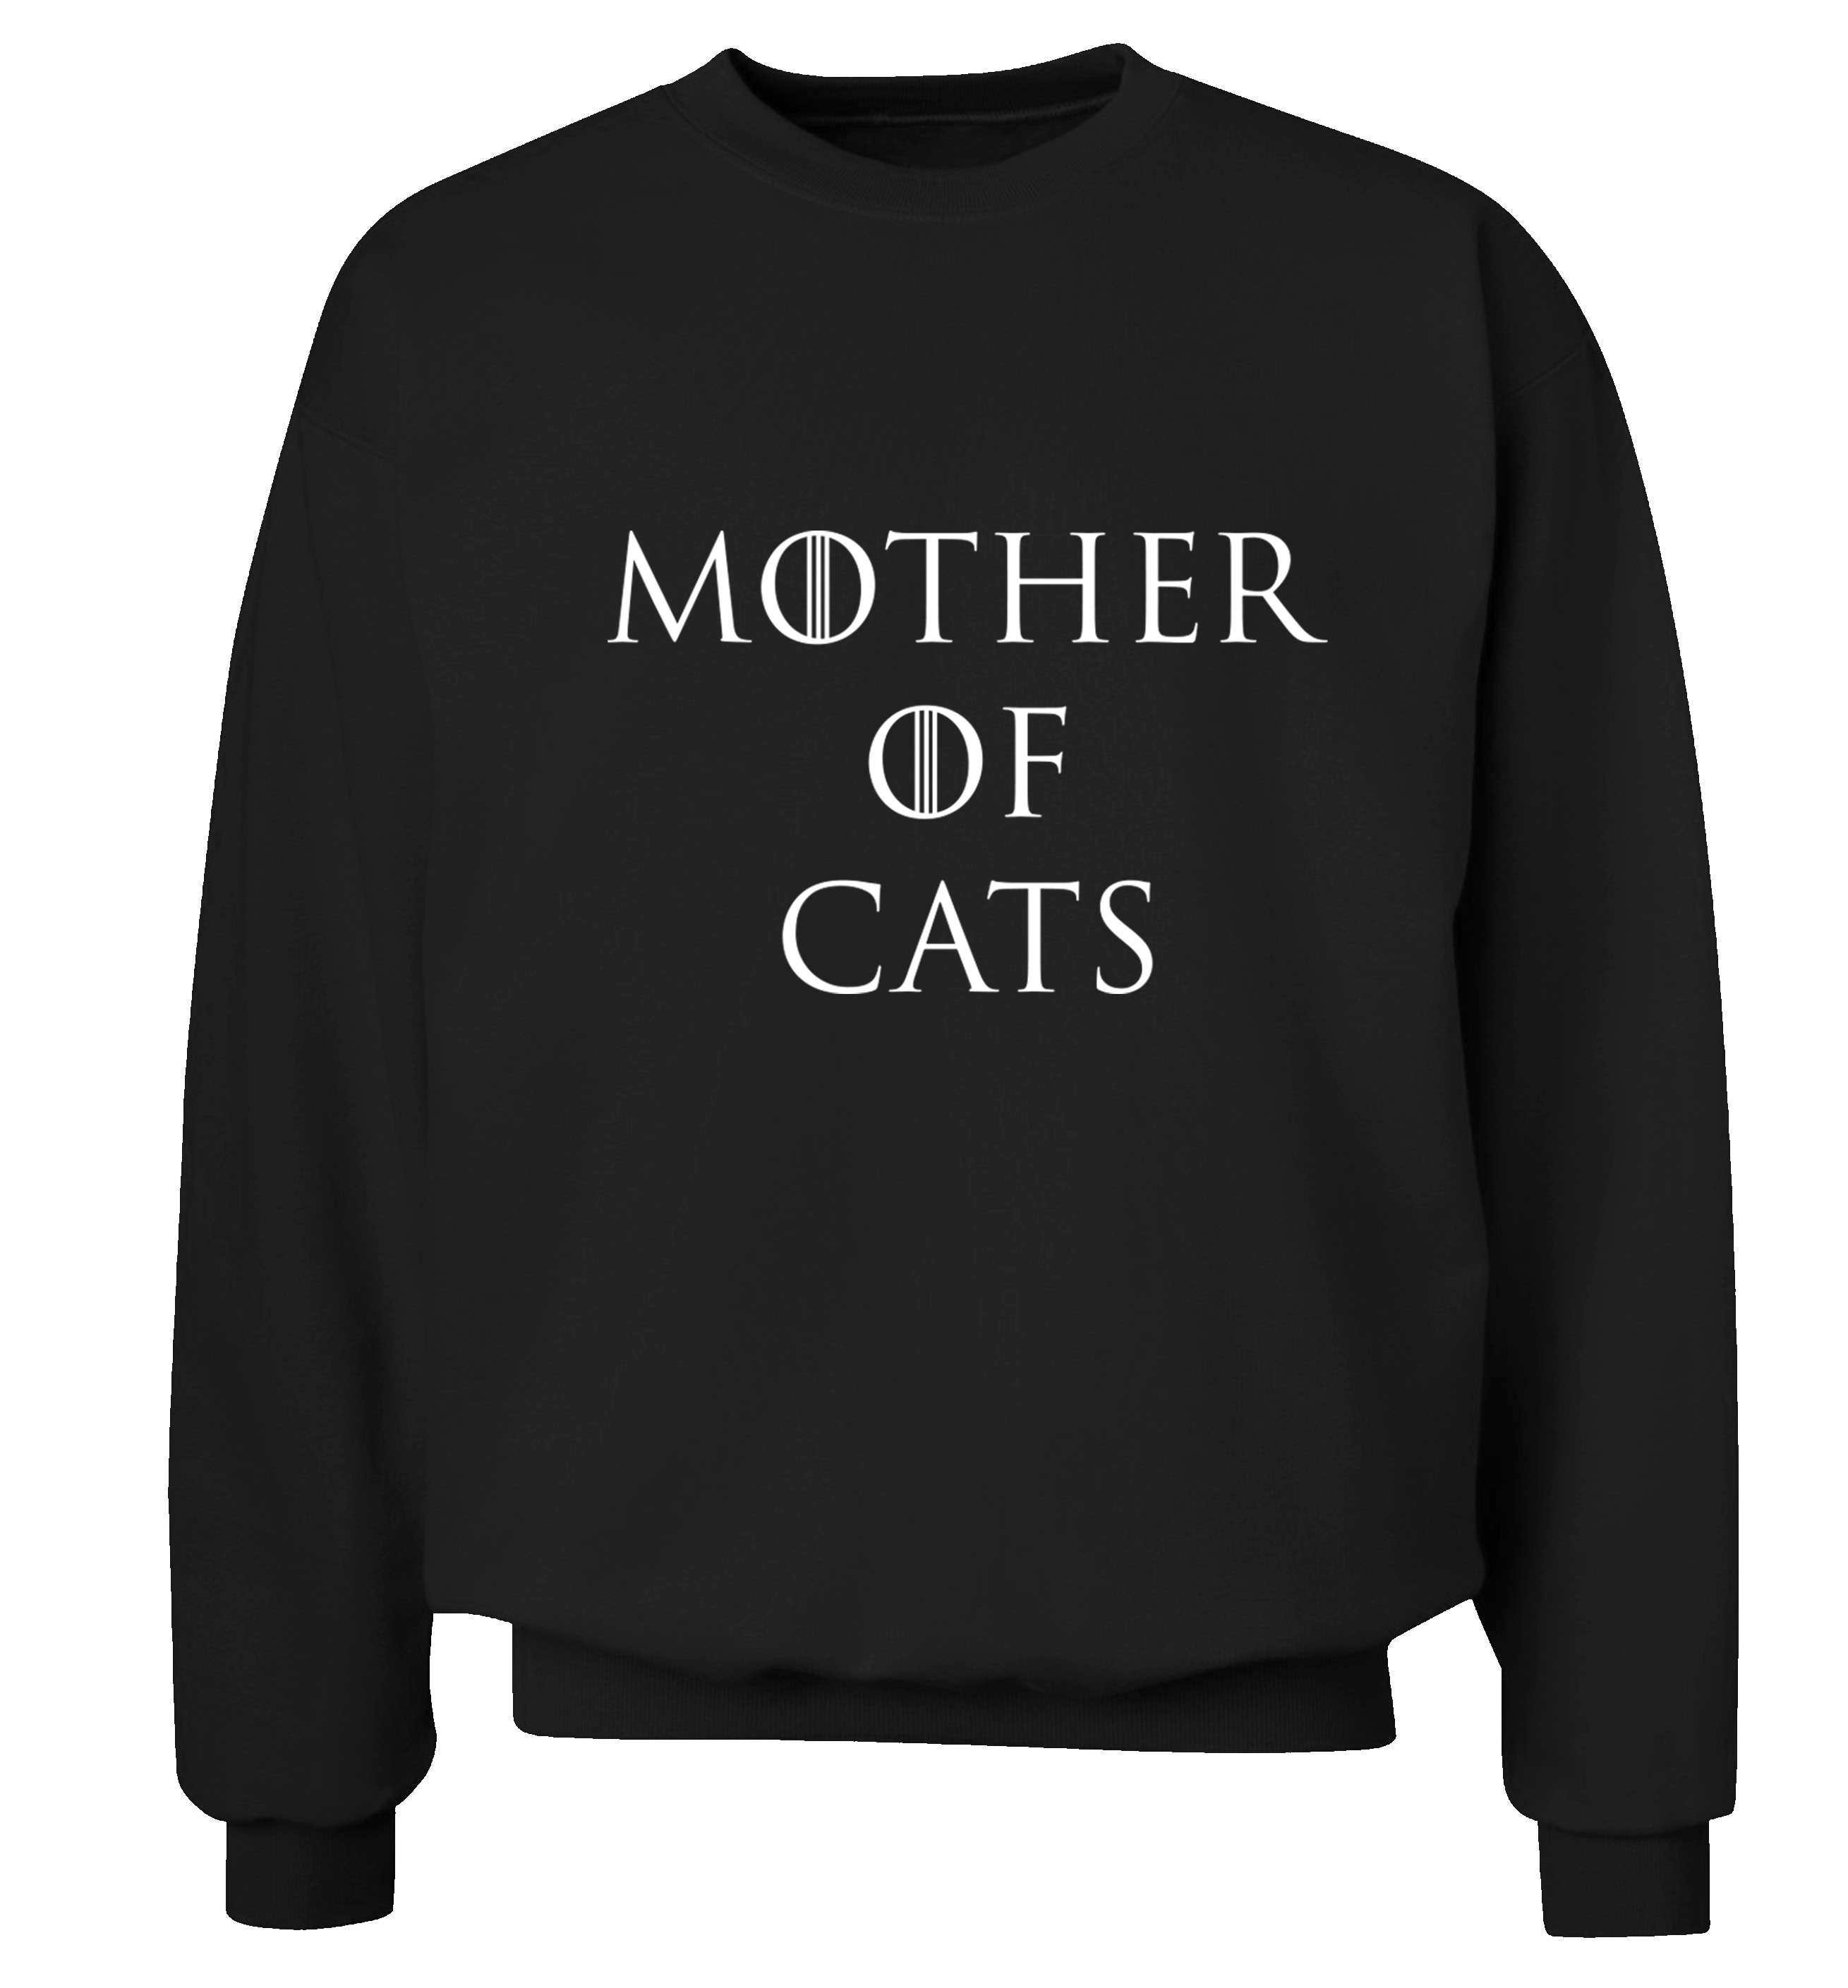 Mother Of Cats Jumper Hipster Tumblr Instagram Weheartit Geek Nerd